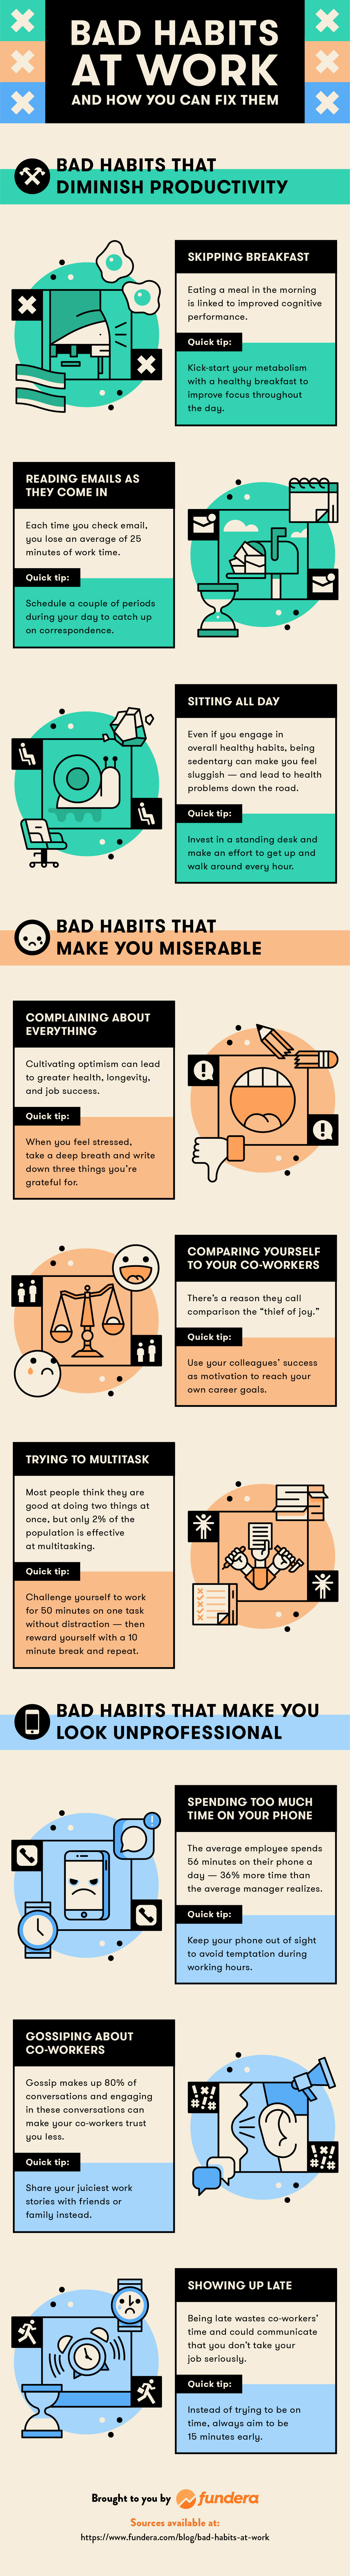 9 bad habits at work and how to fix them